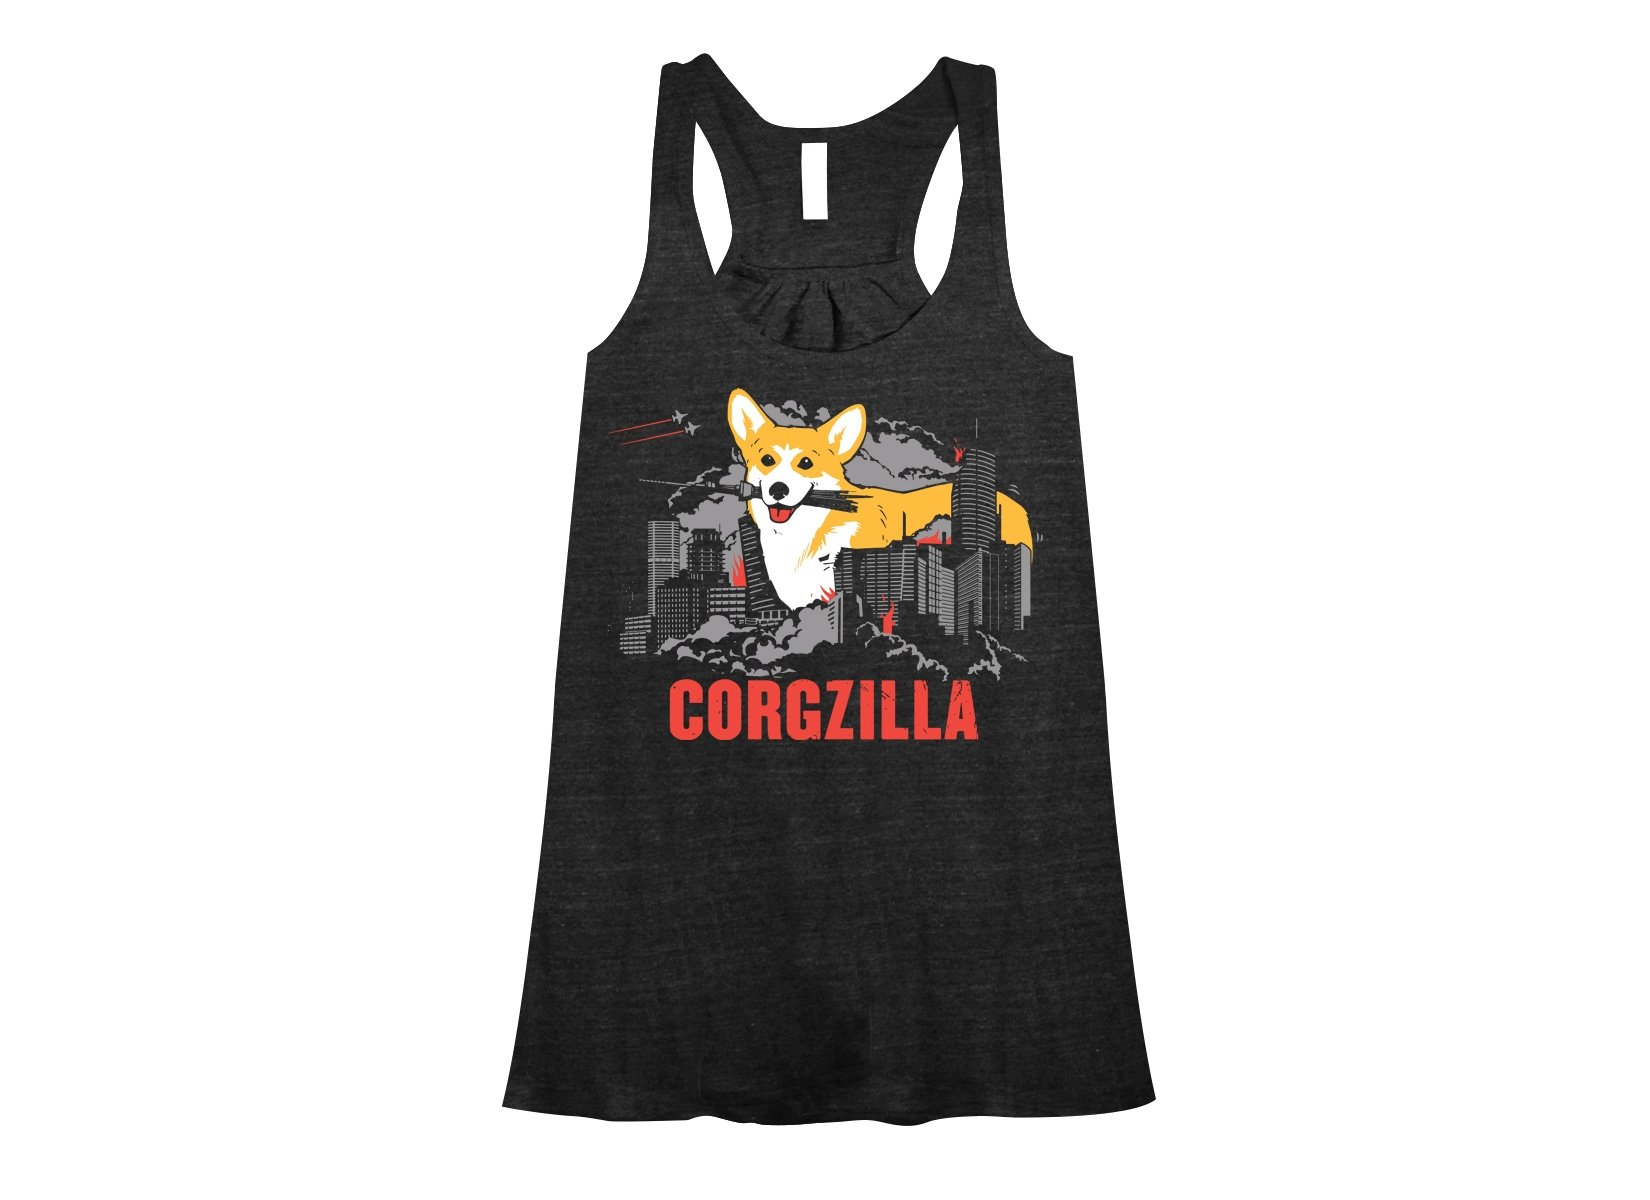 Corgzilla on Womens Tanks T-Shirt